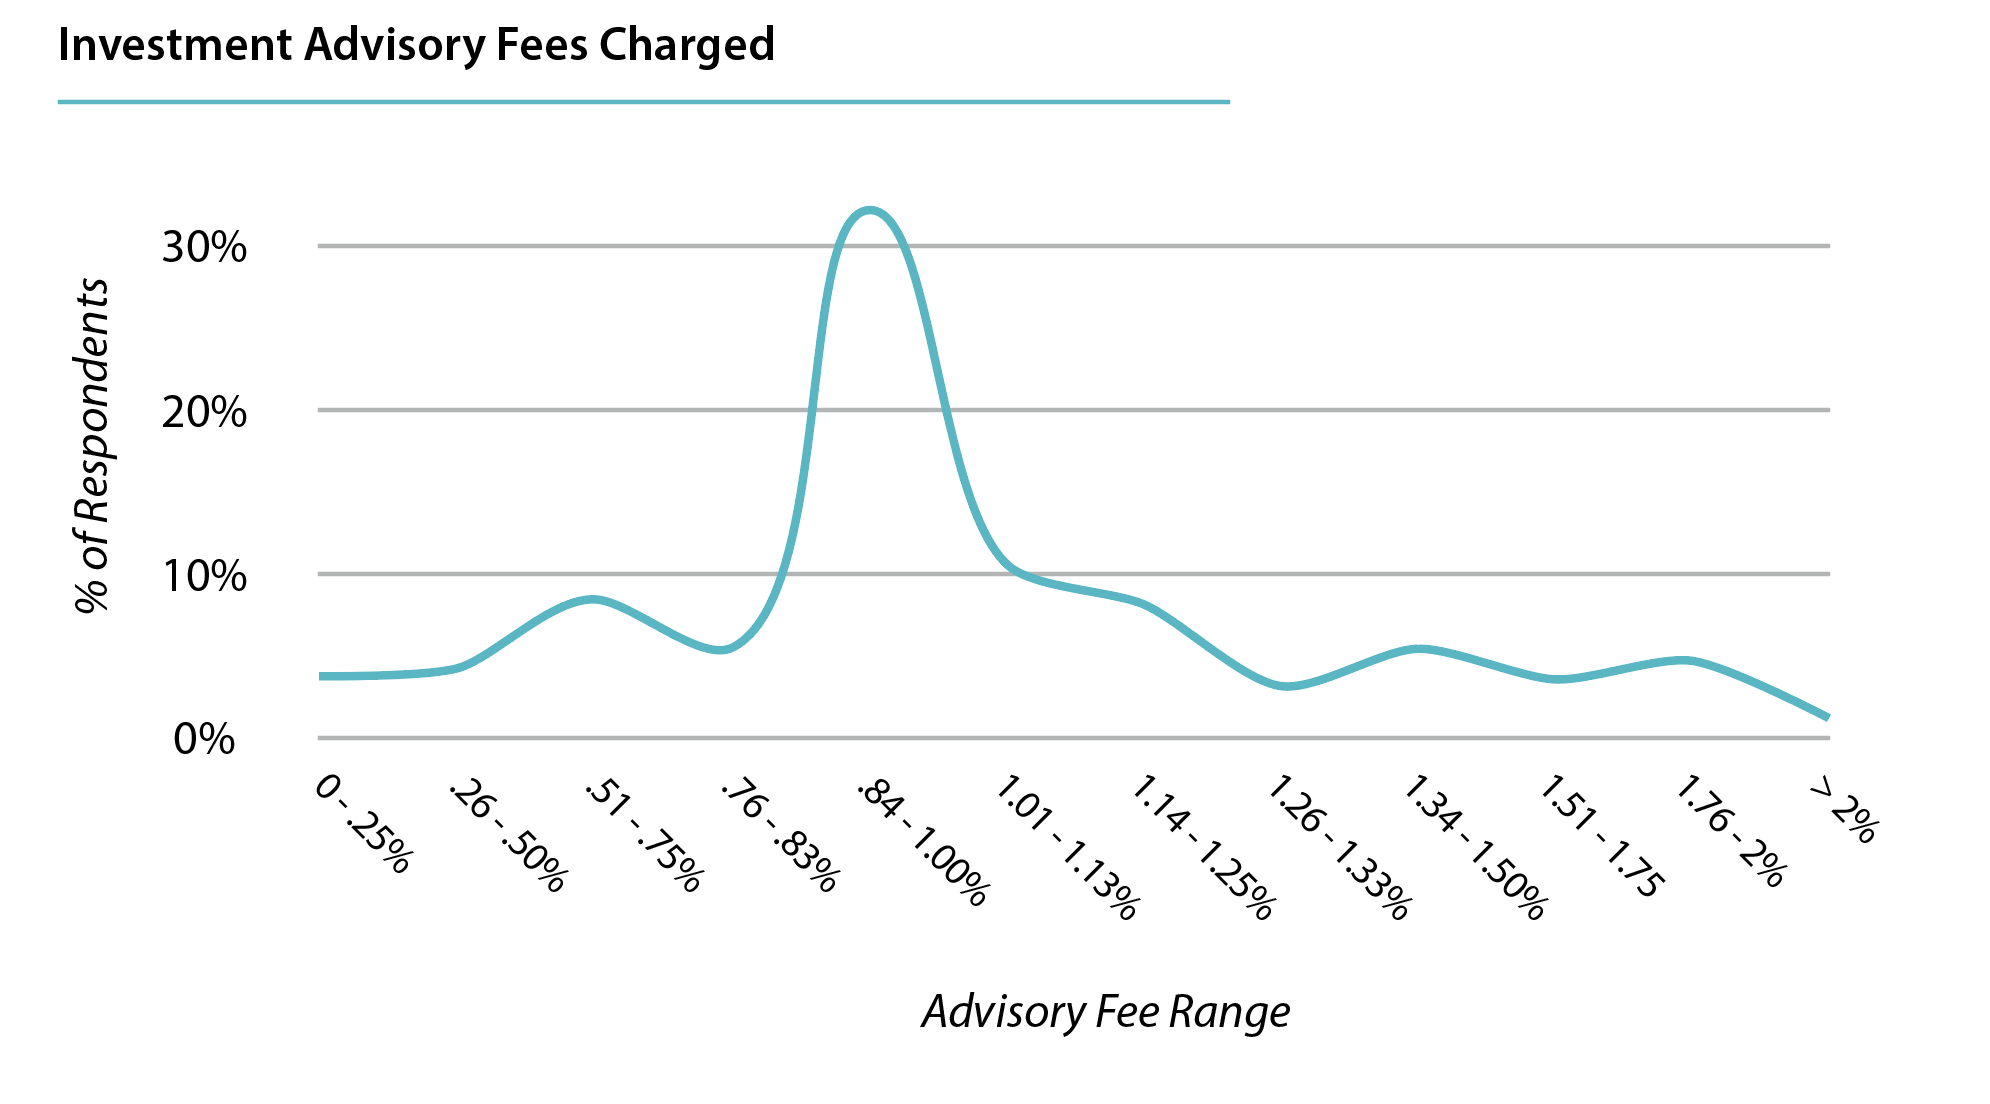 Average asset under management advisory fees charged by RIA firms